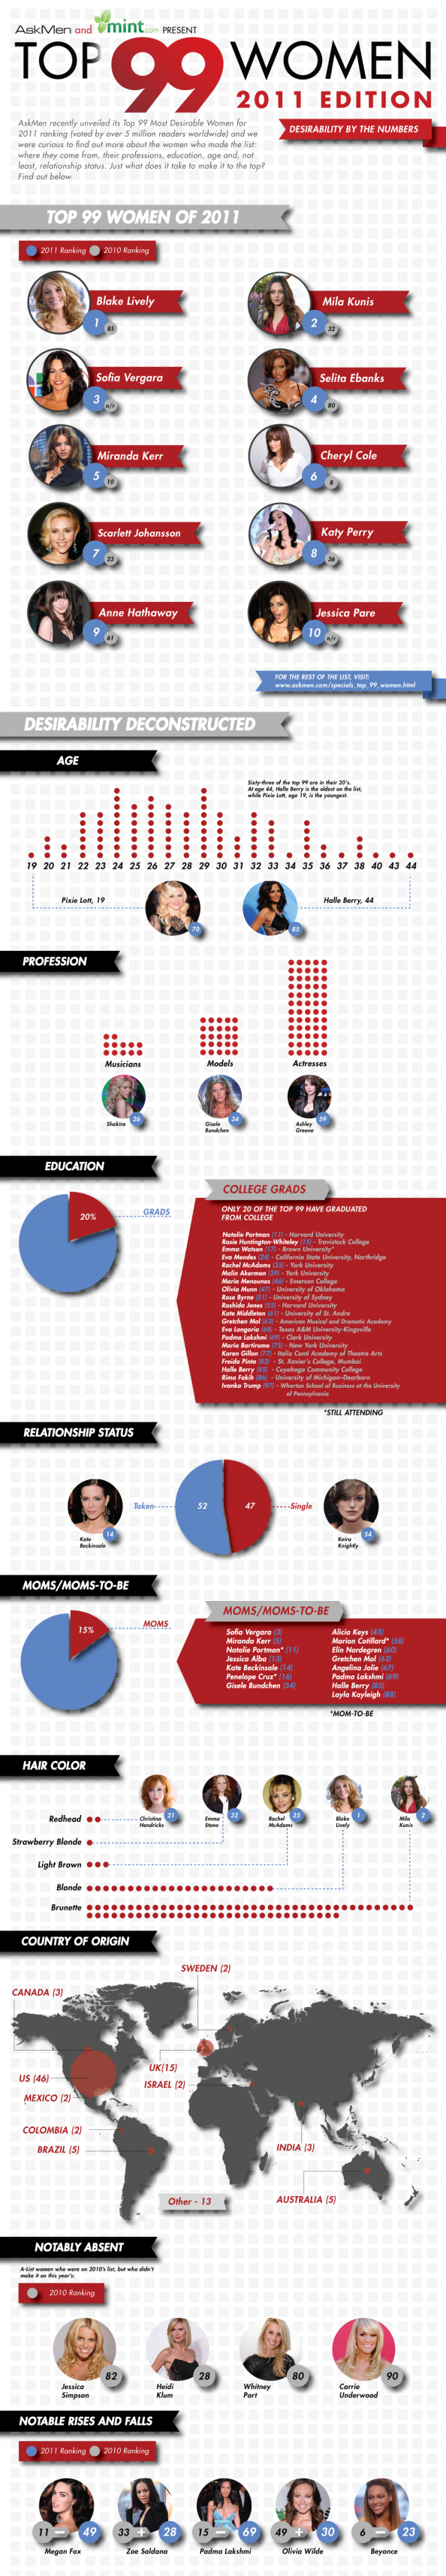 Desirability by the Numbers: Top 99 Women of 2011 Infographic